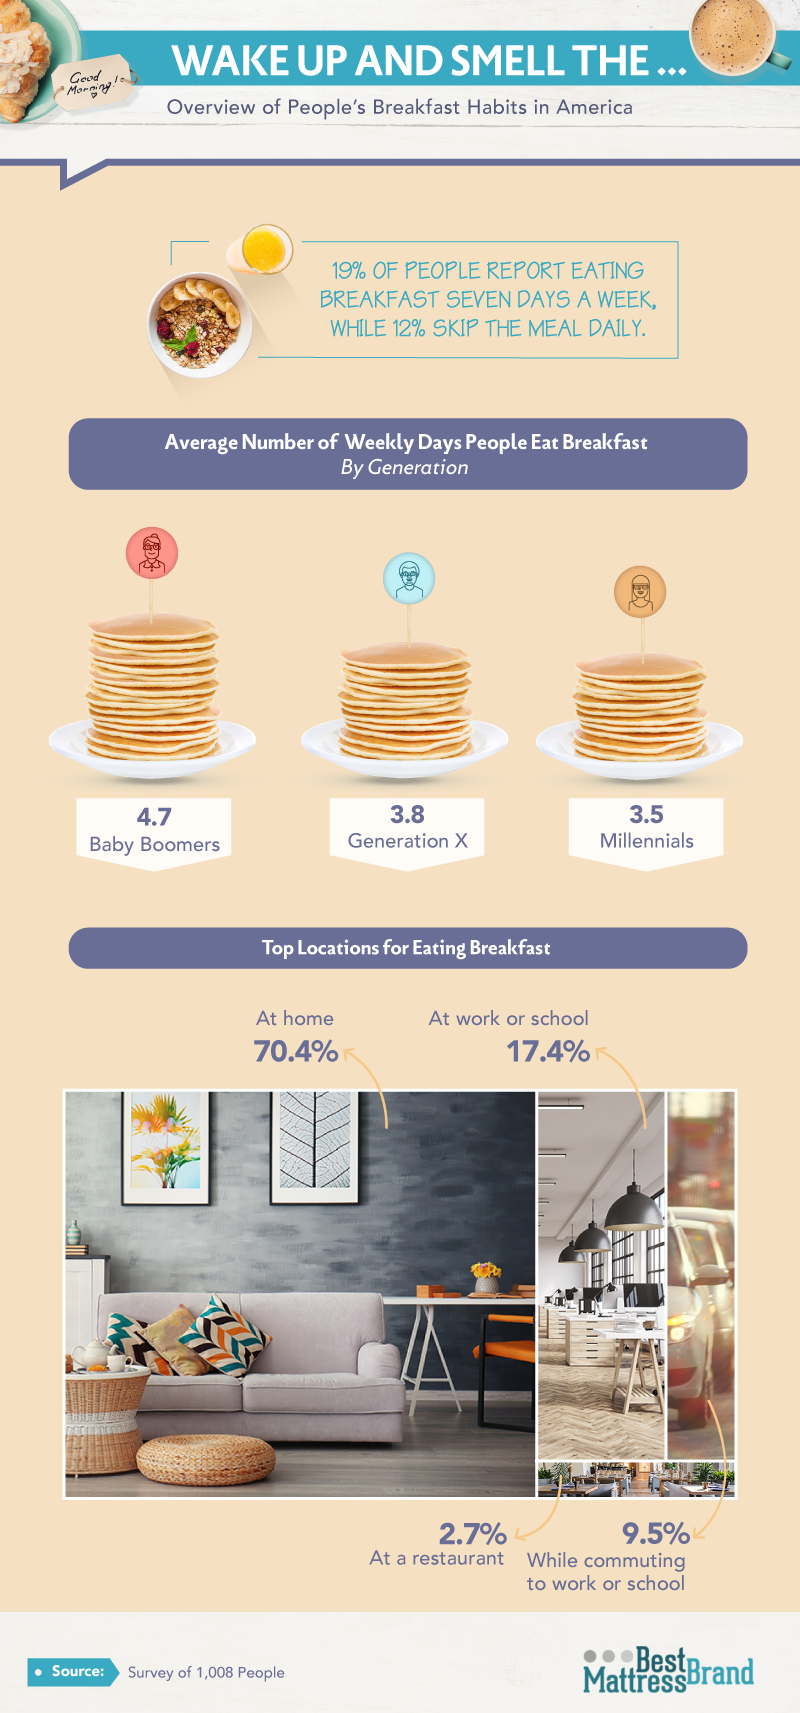 Overview of People's Breakfast Habits in America